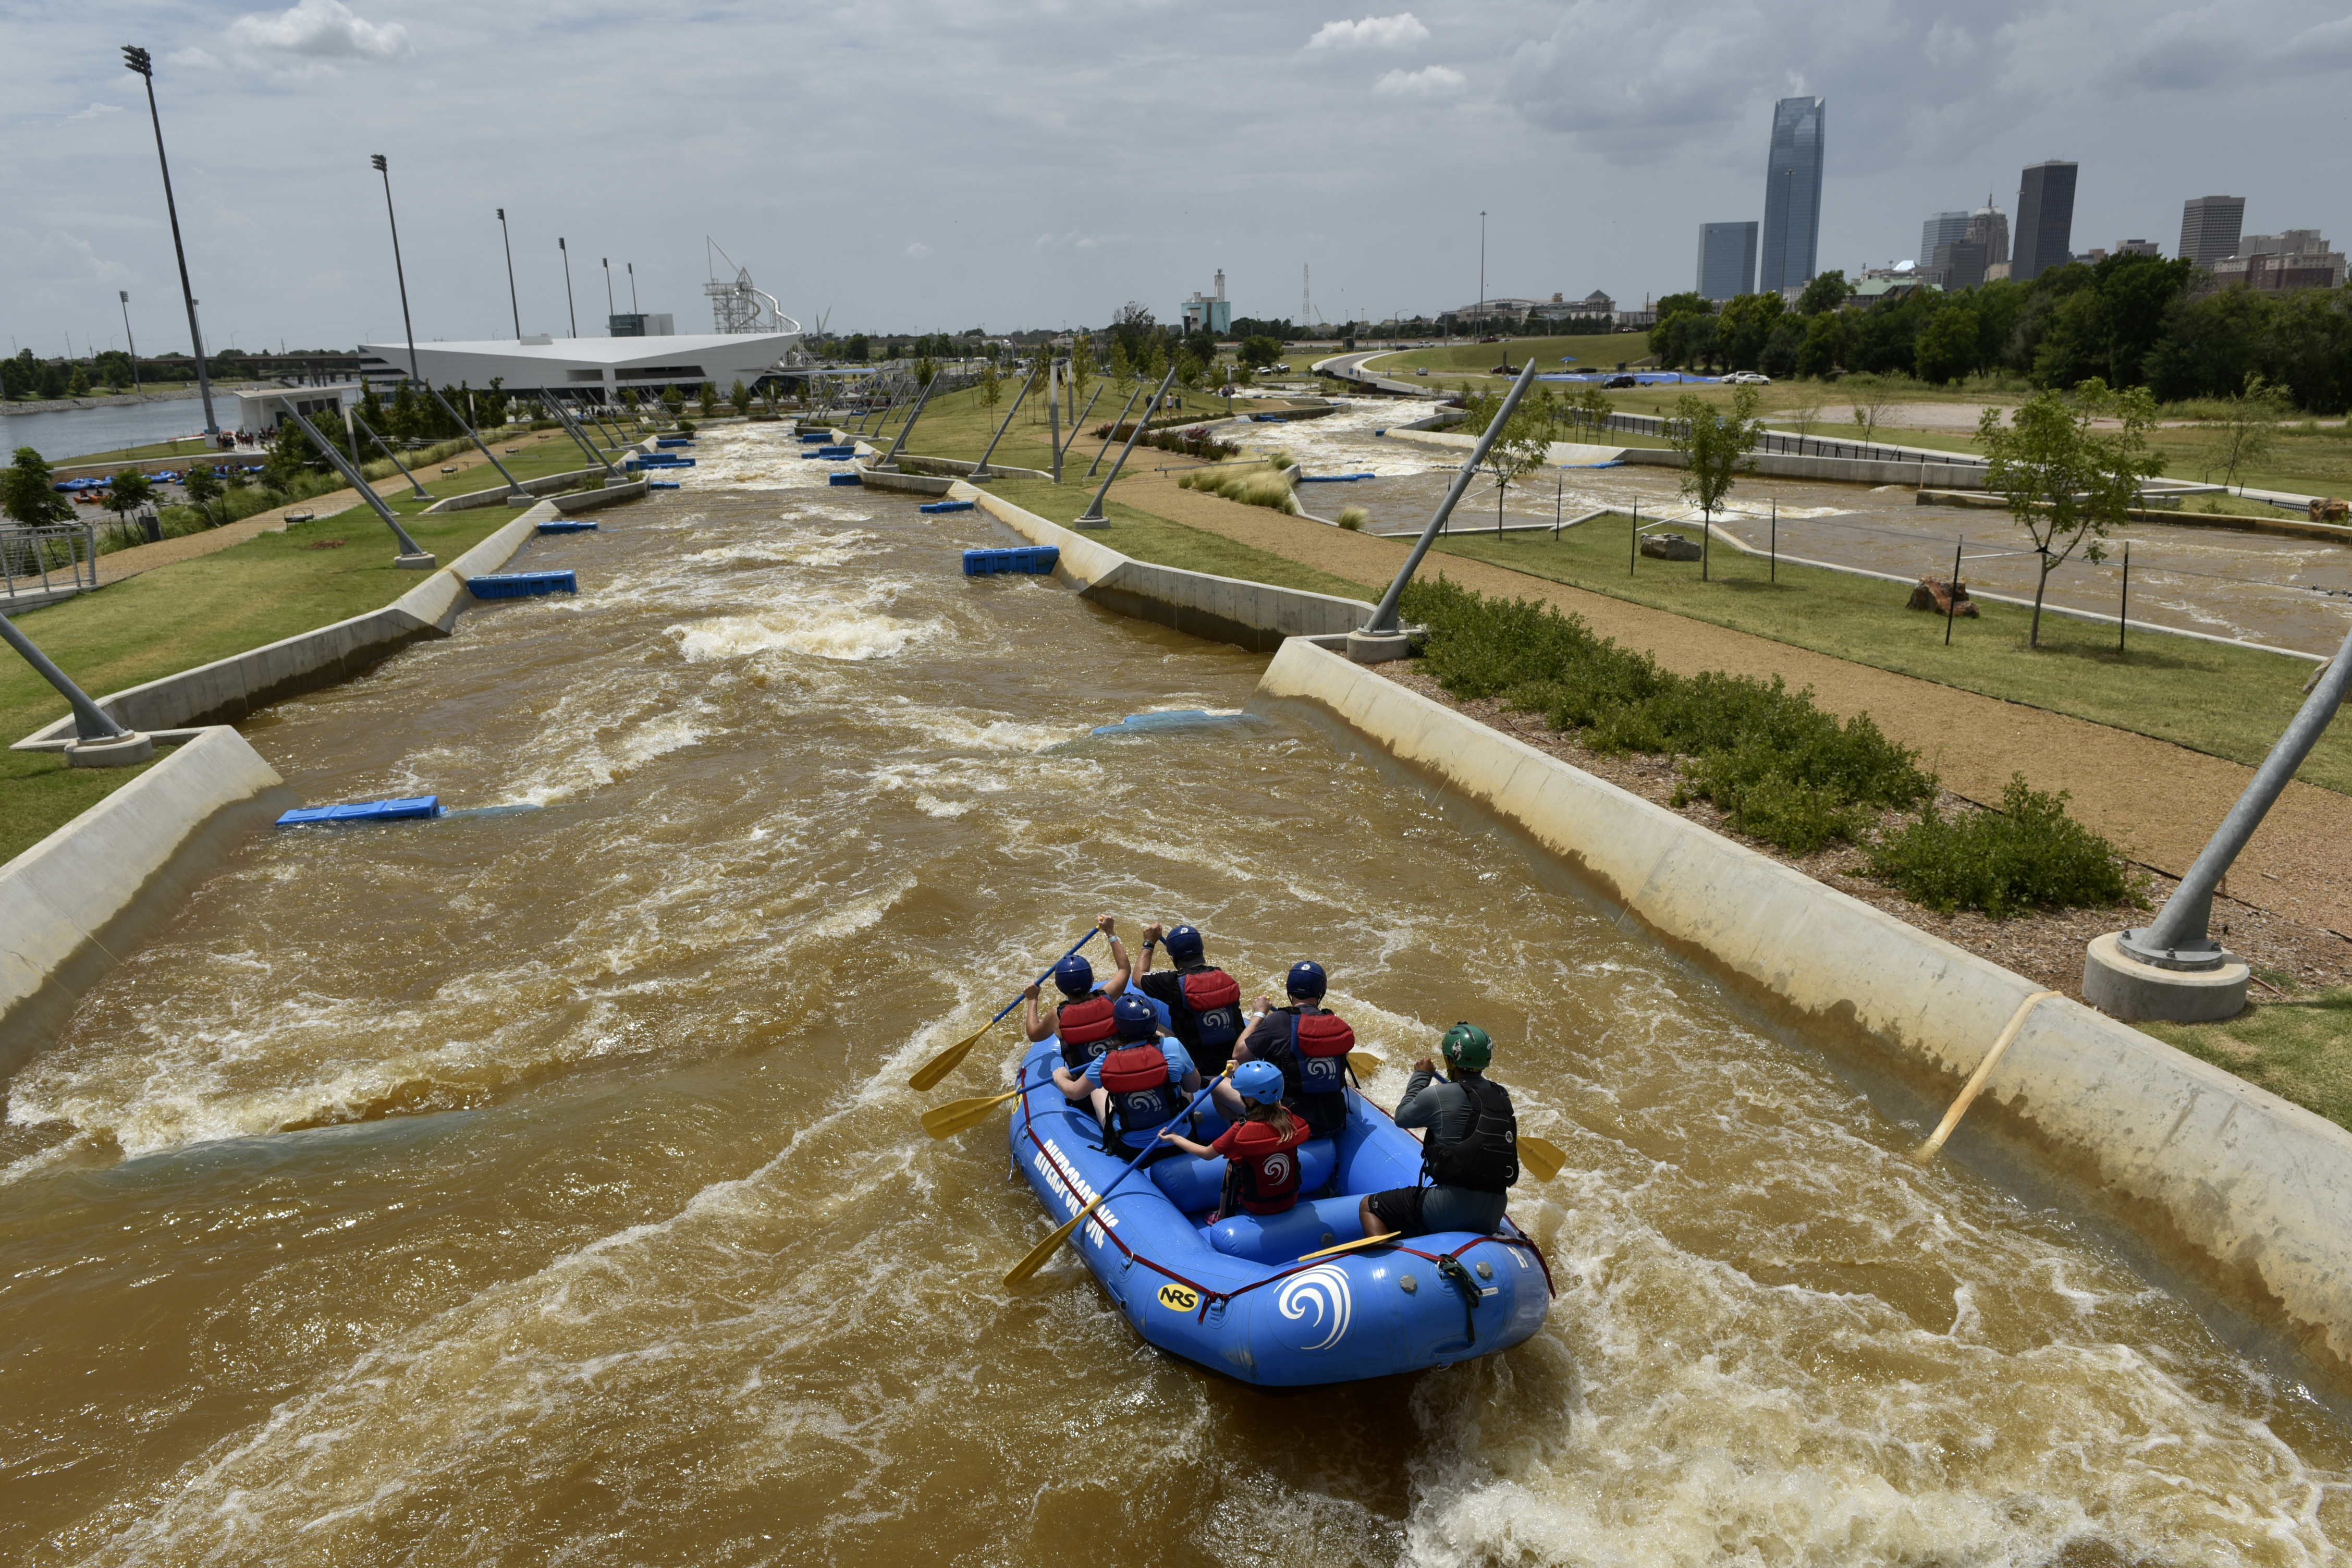 A group traverses the rapids at a white-water rafting and kayaking center that was paid for by a 1-cent sales tax increase in Oklahoma City. MUST CREDIT: Photo for The Washington Post by Nick Oxford